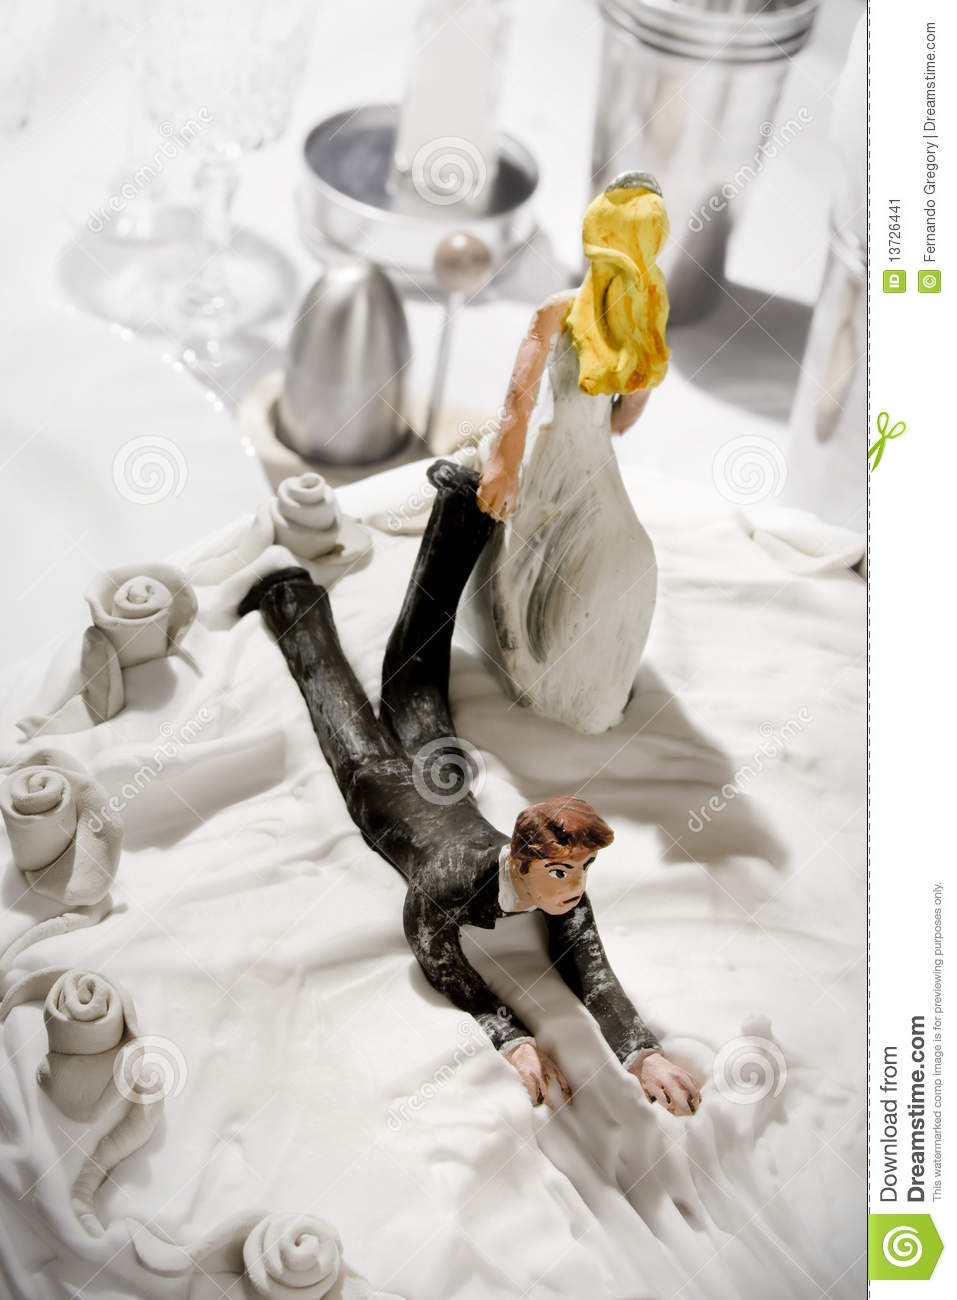 Funny Wedding Cake Figurines Stock Image - Image of party, lifestyle ...